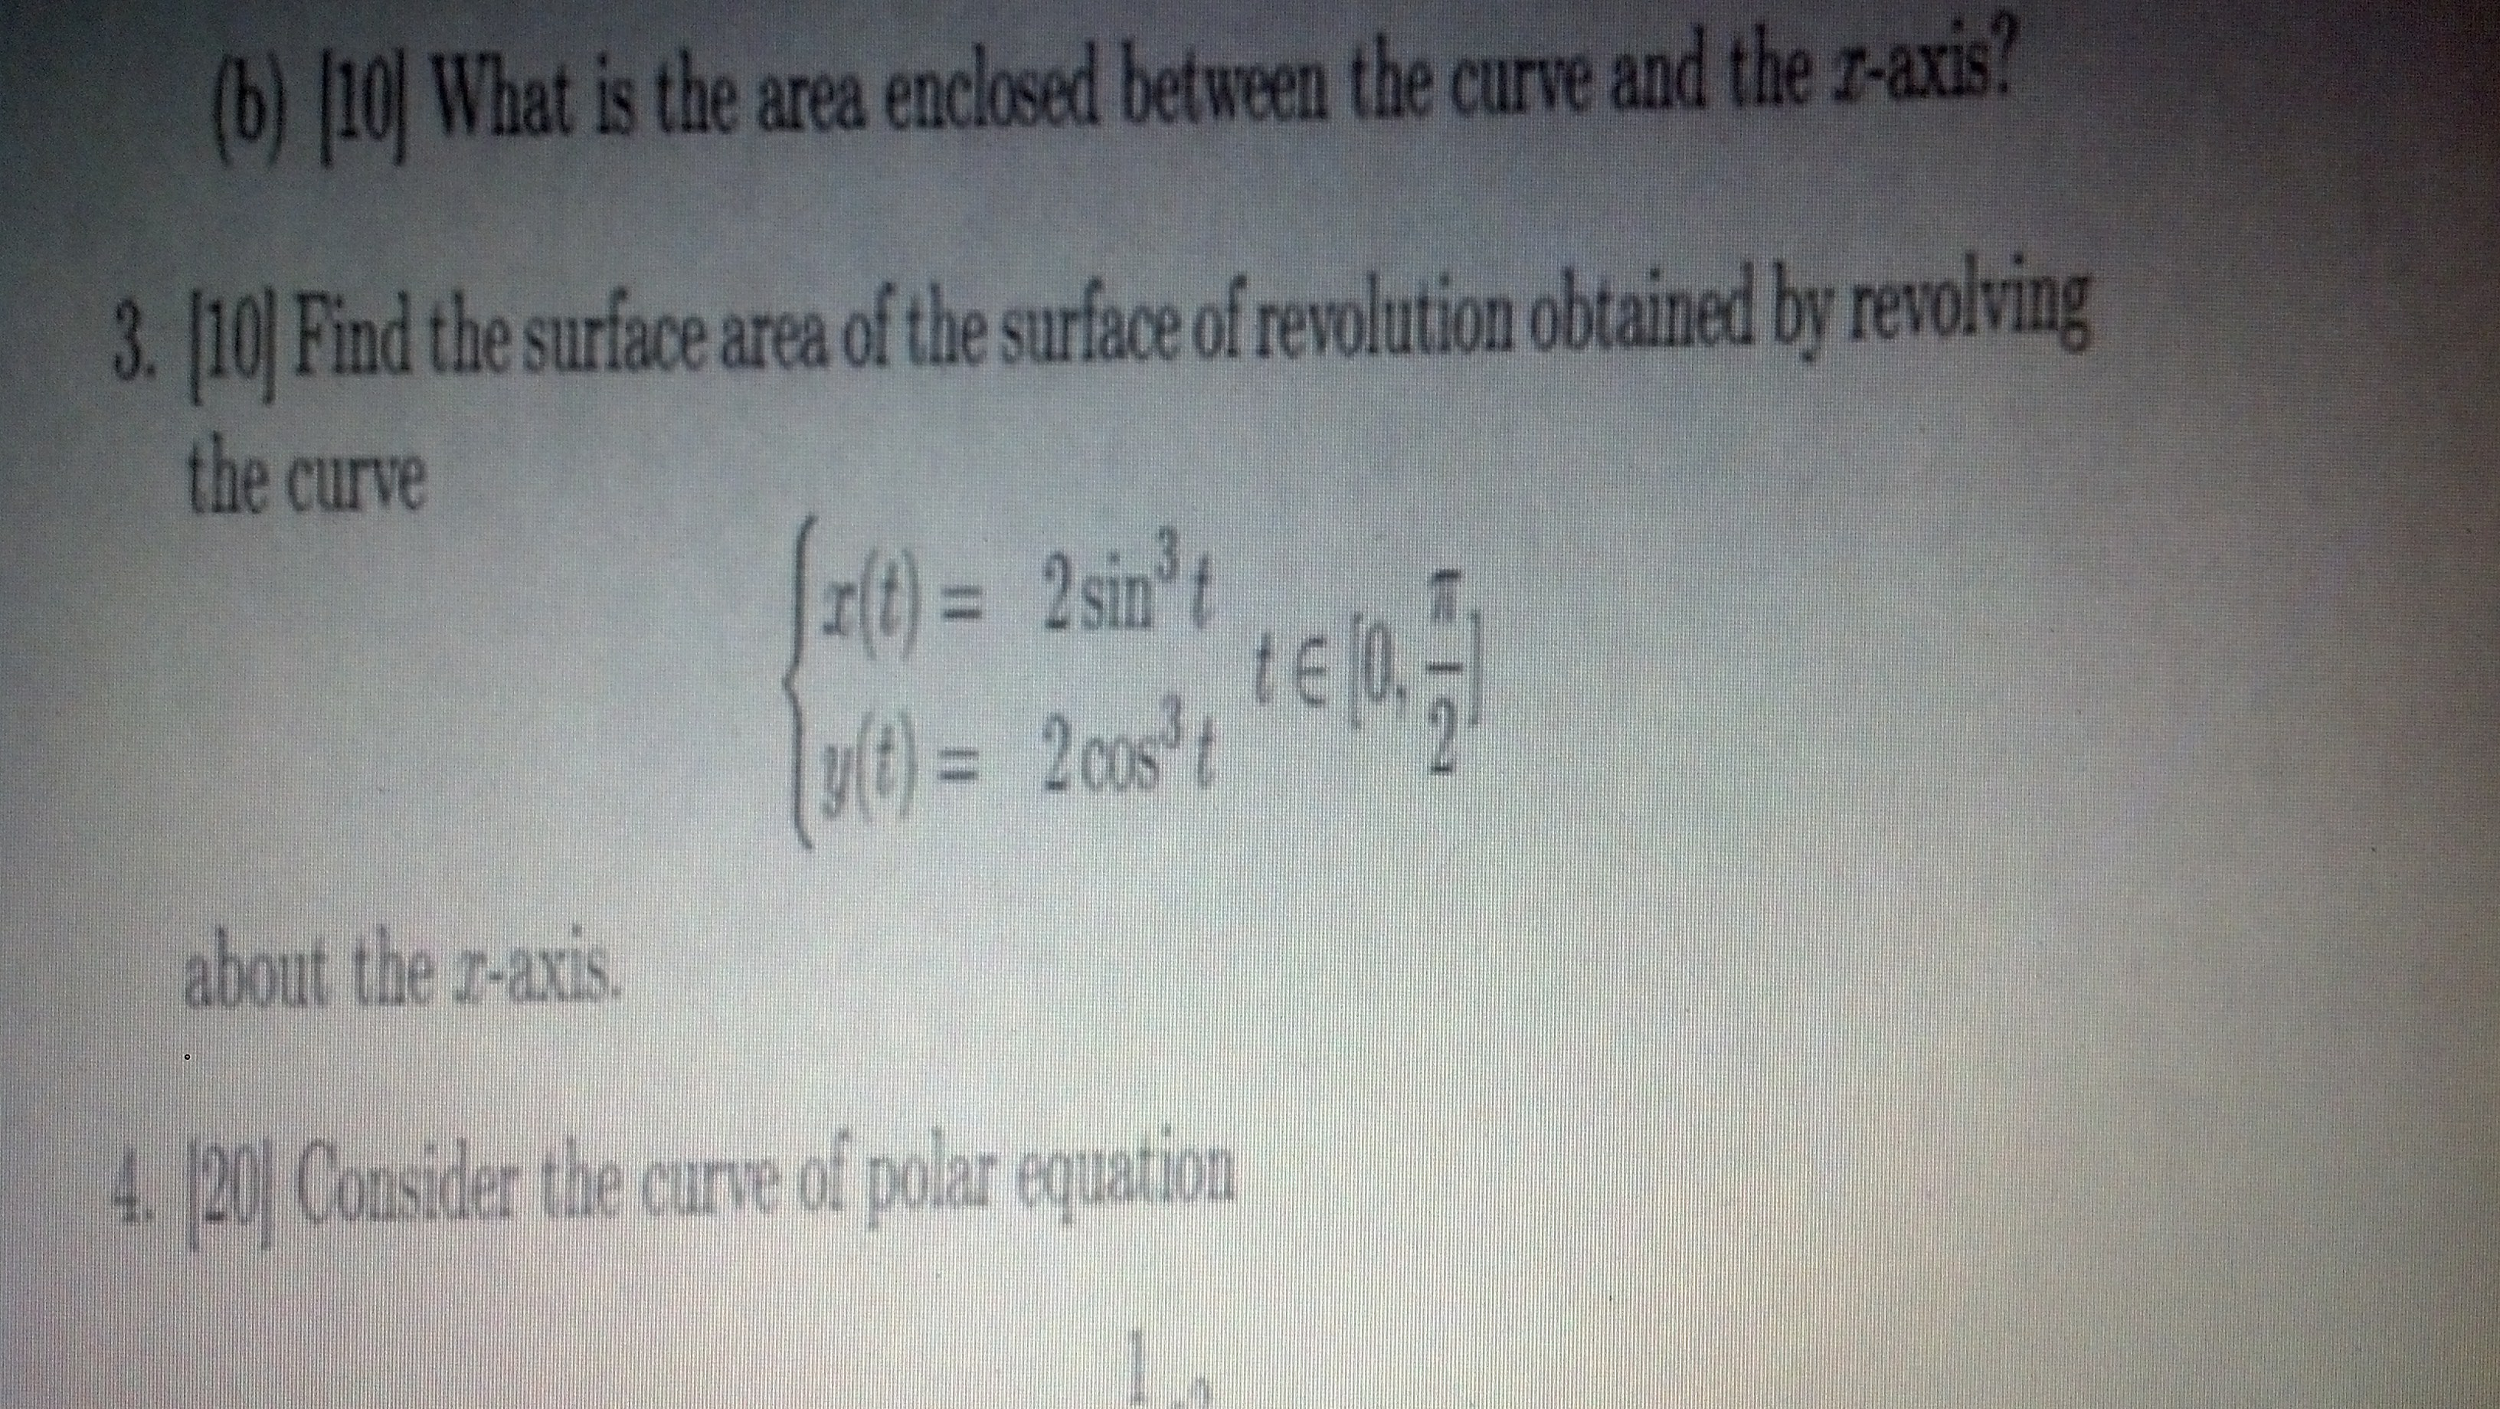 What is the area enclosed between the curve and th